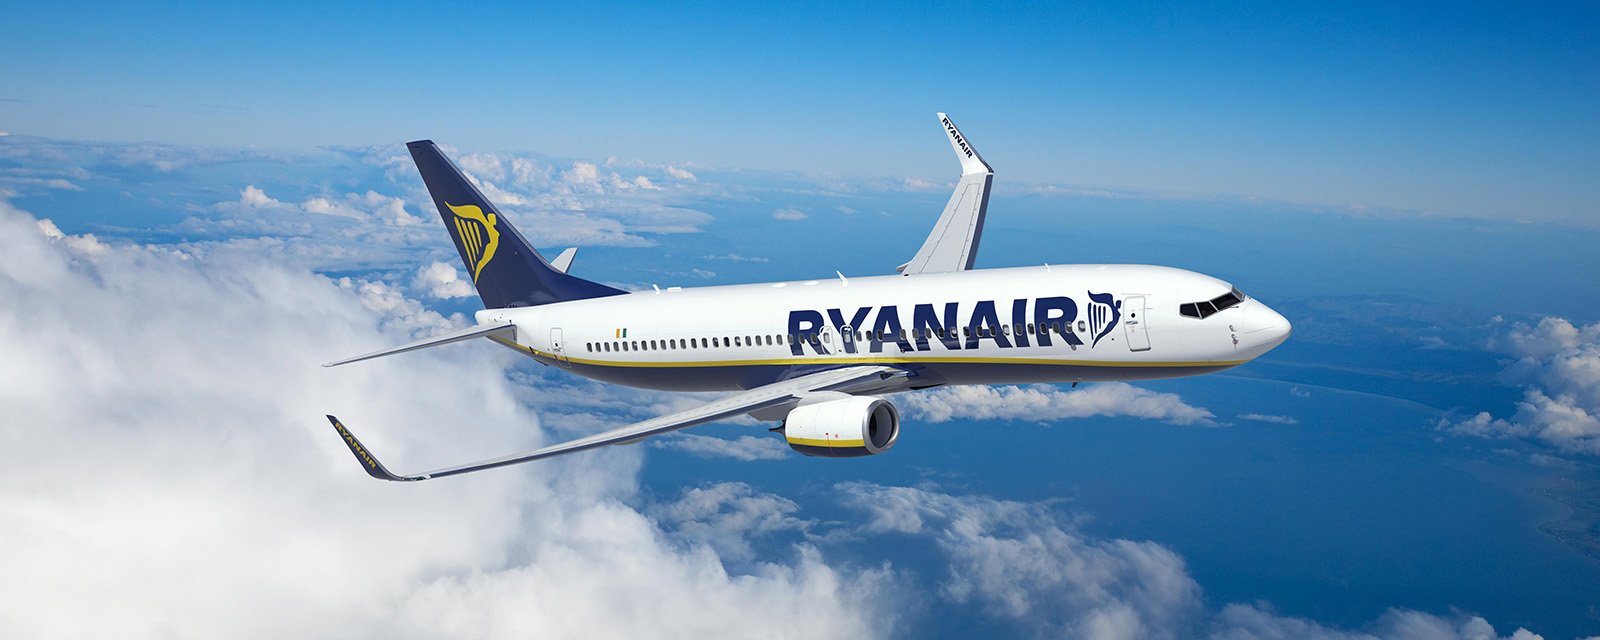 Ryanair Latest News